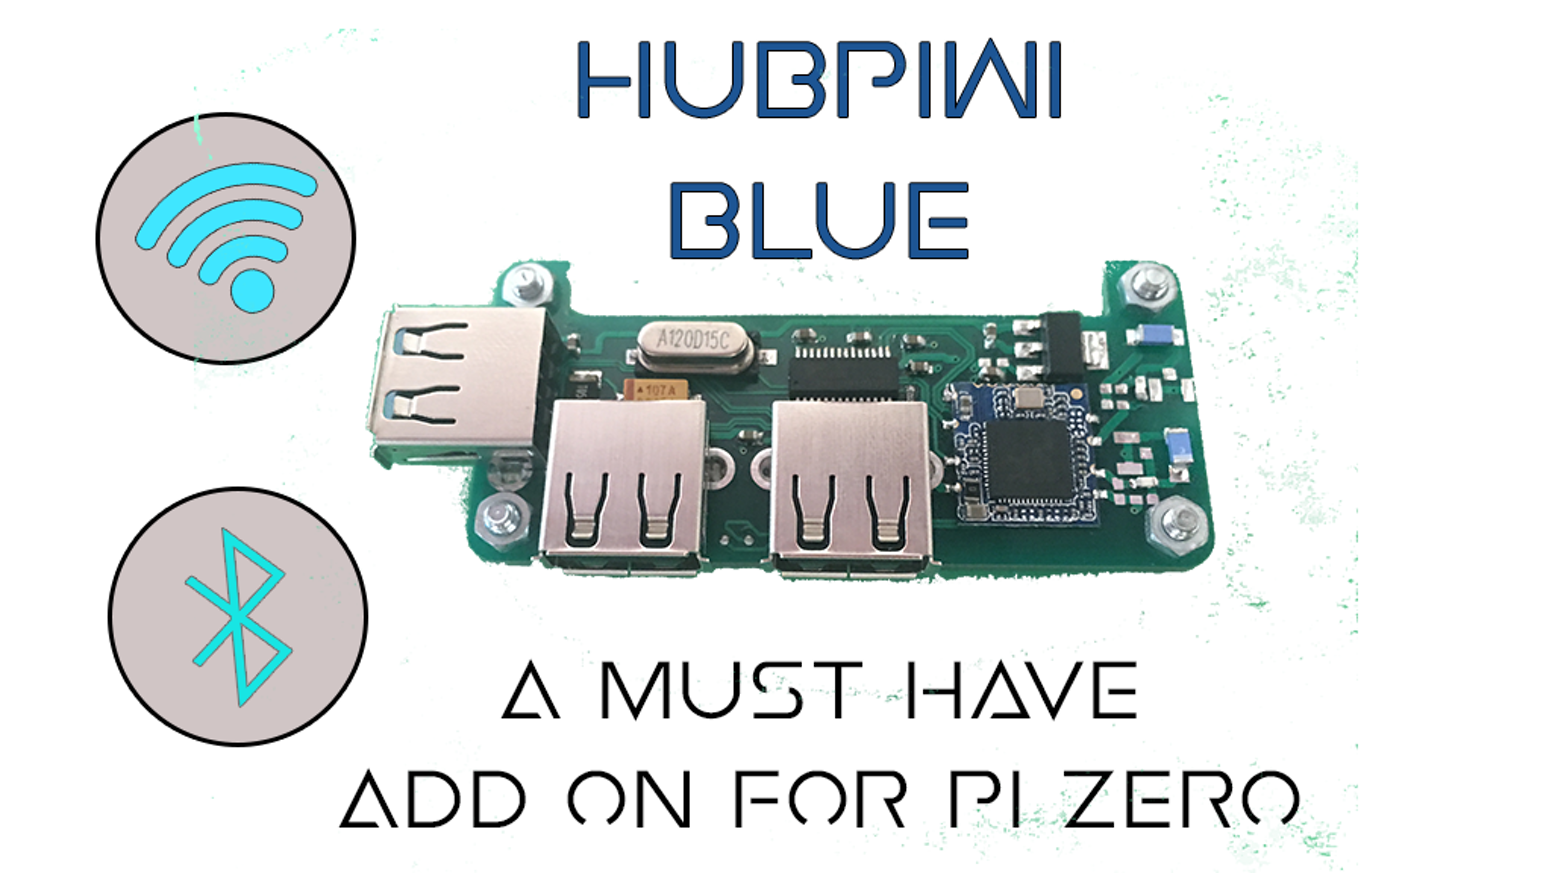 The HubPiWi Blue is a add-on to the Raspberry Pi Zero. It has 3 USB ports along with a WiFi and a Bluetooth.